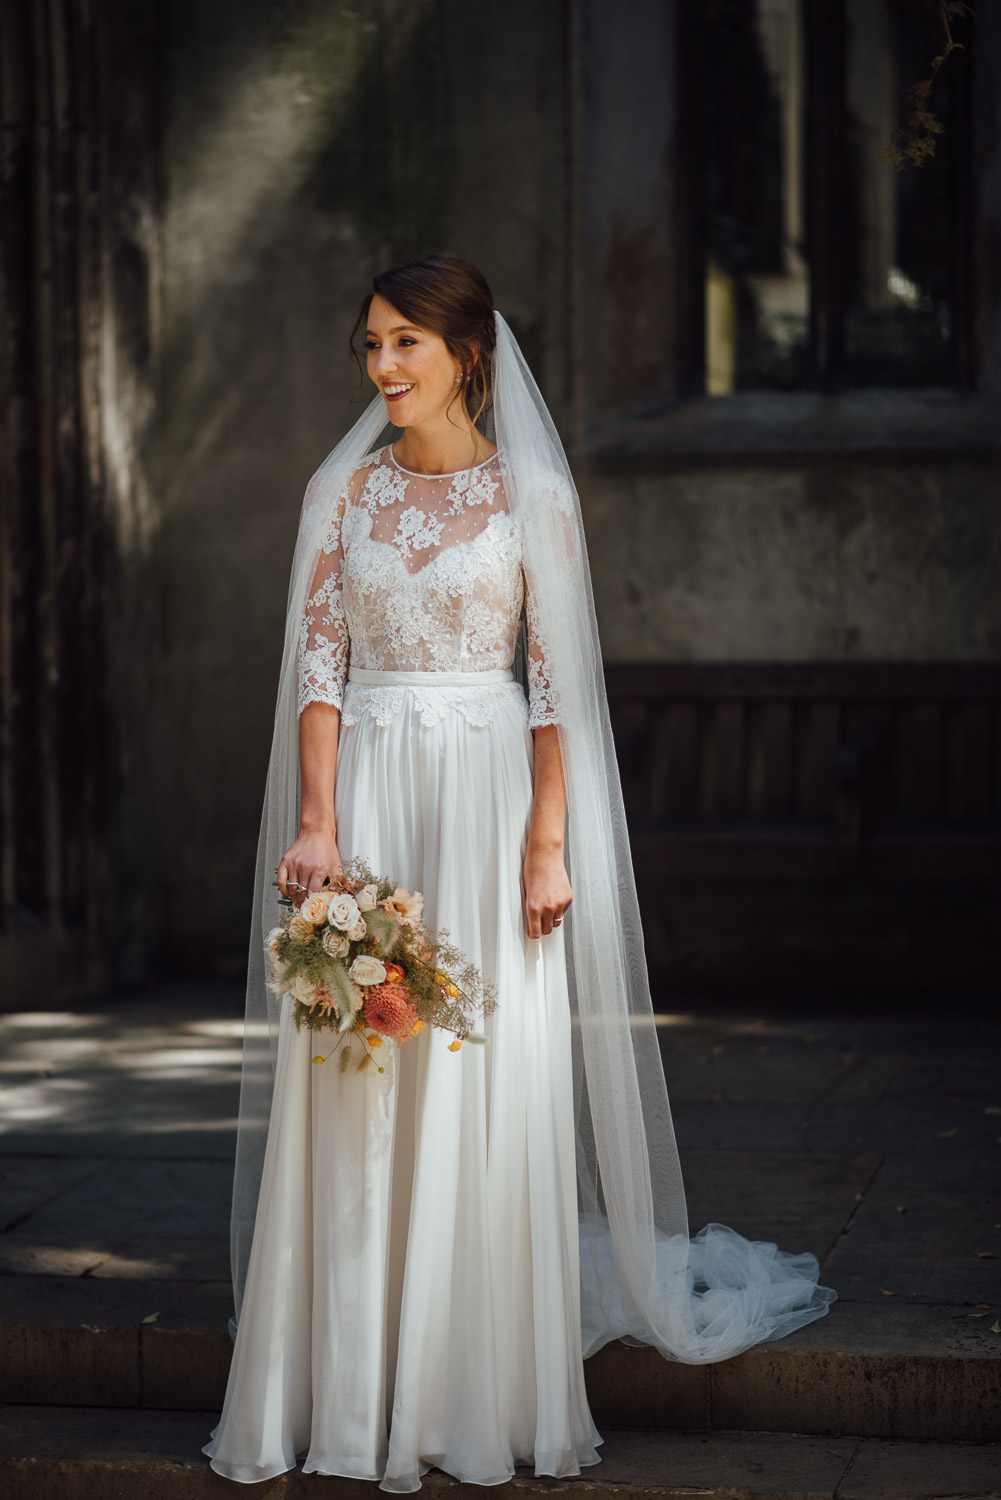 cool london bride in margaux tardits dress by the shannons photography